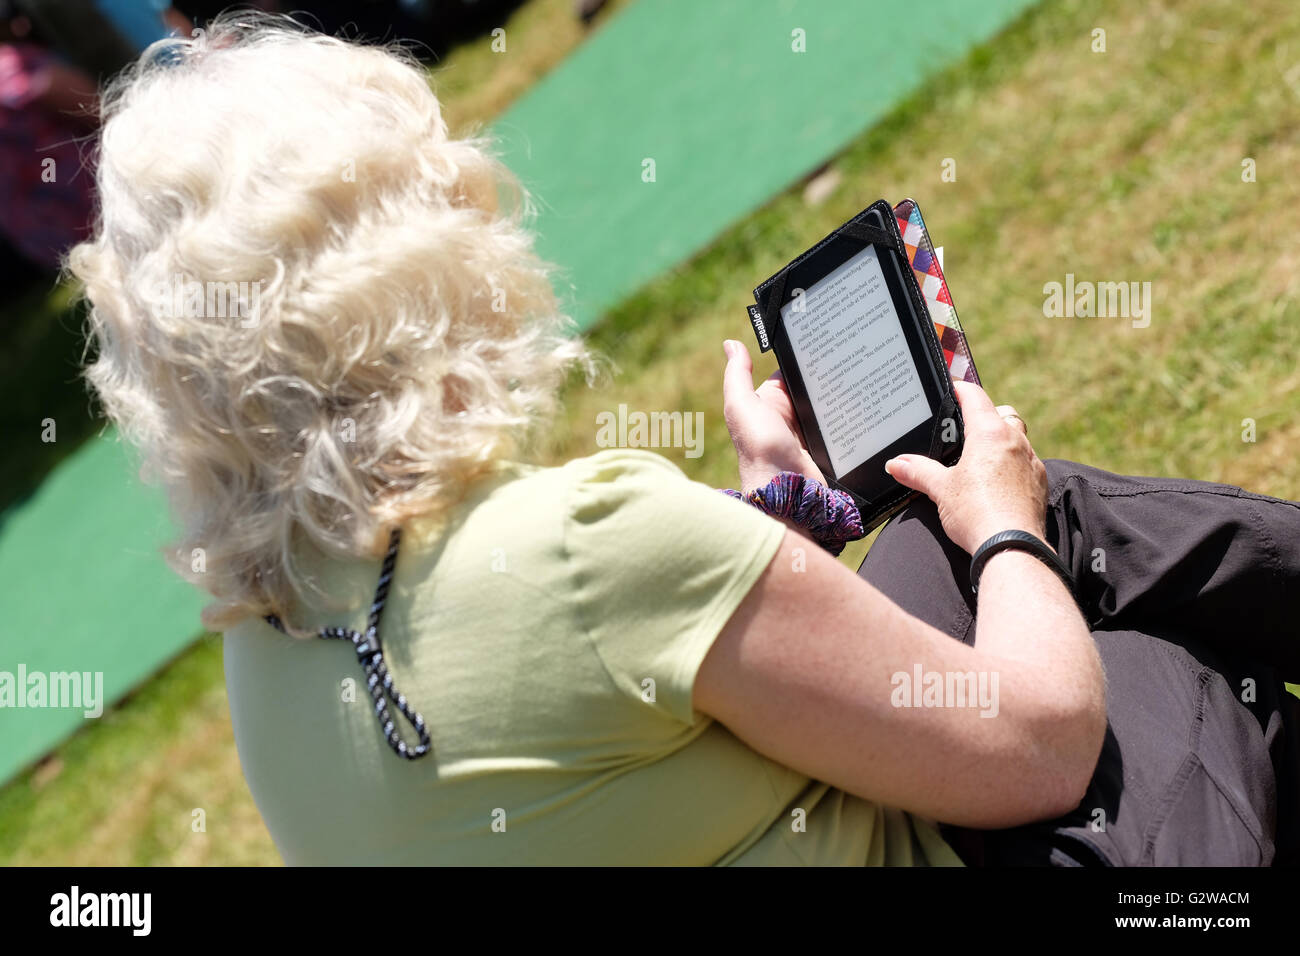 Hay Festival, Wales, UK - June 2016 -  A woman sits and reads her ebook reader tablet on the Hay Festival lawns. - Stock Image